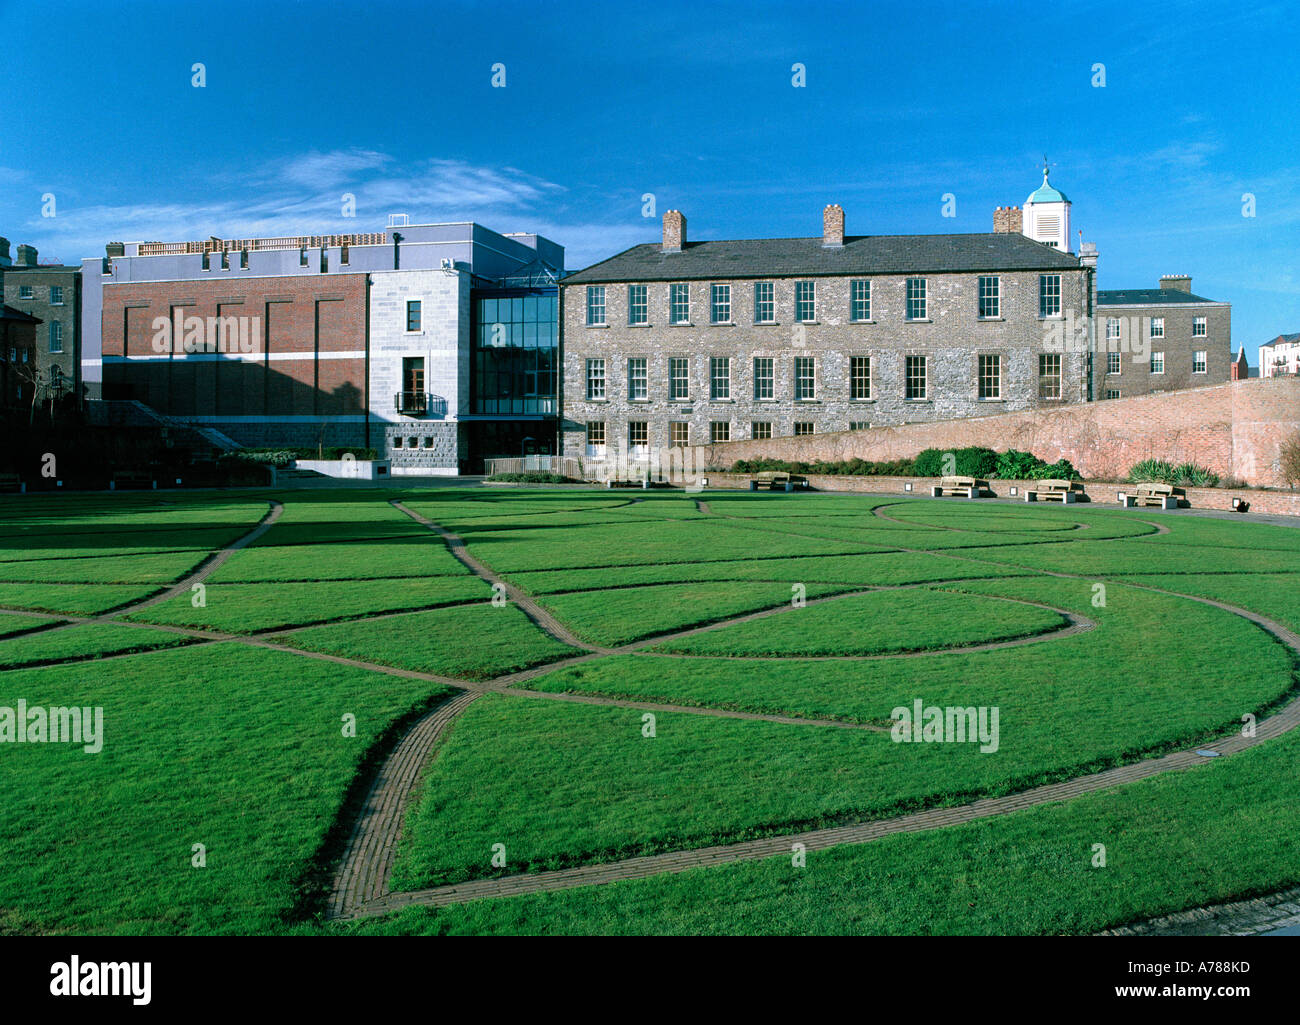 The Chester Beatty Library, in the grounds of Dublin Castle, Ireland - Stock Image